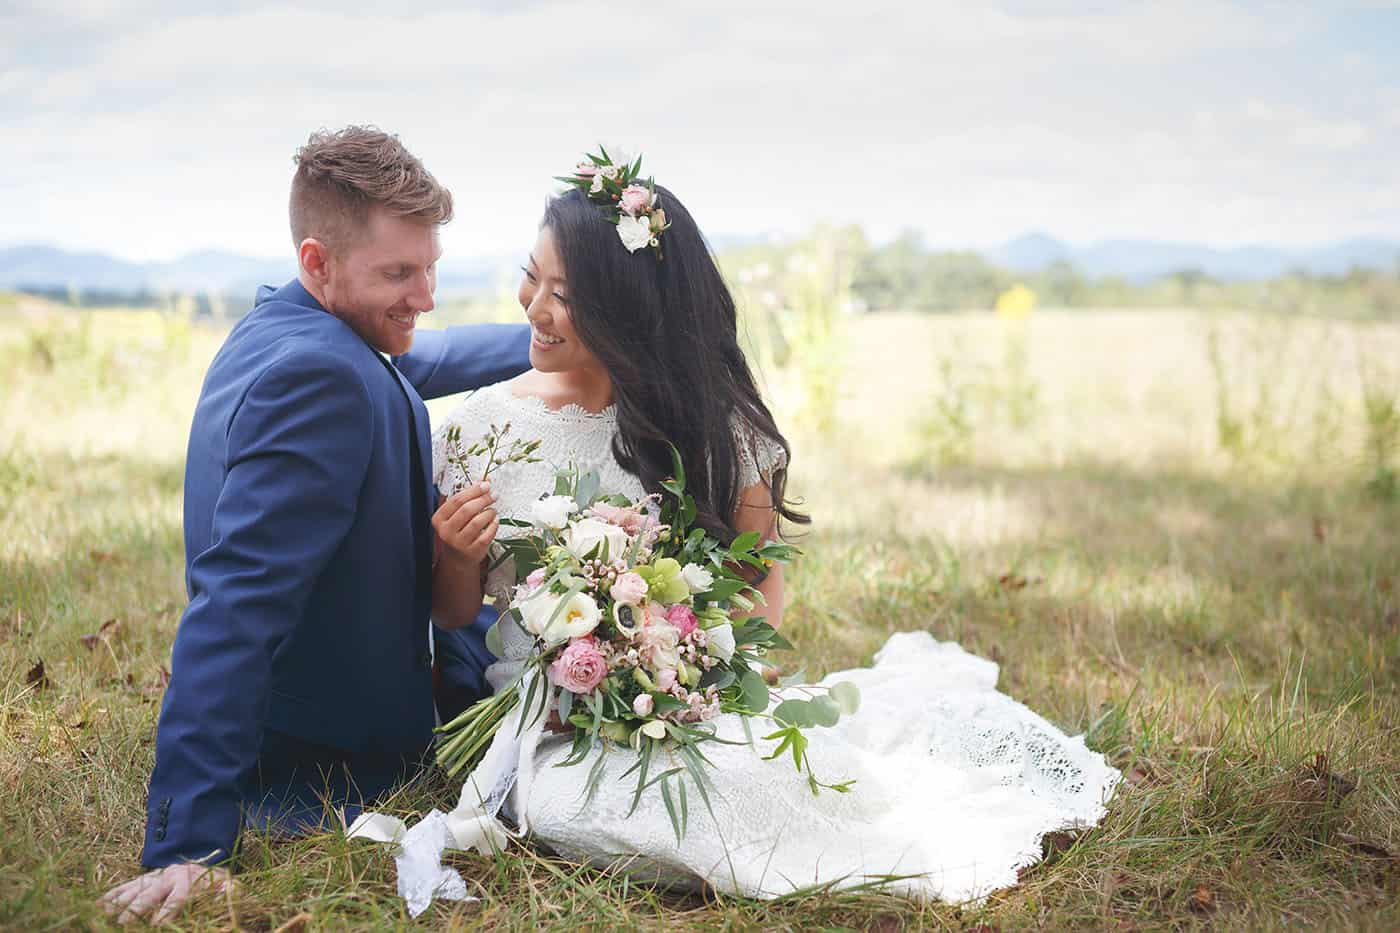 A bride and groom sit together in a field full of wildflowers.